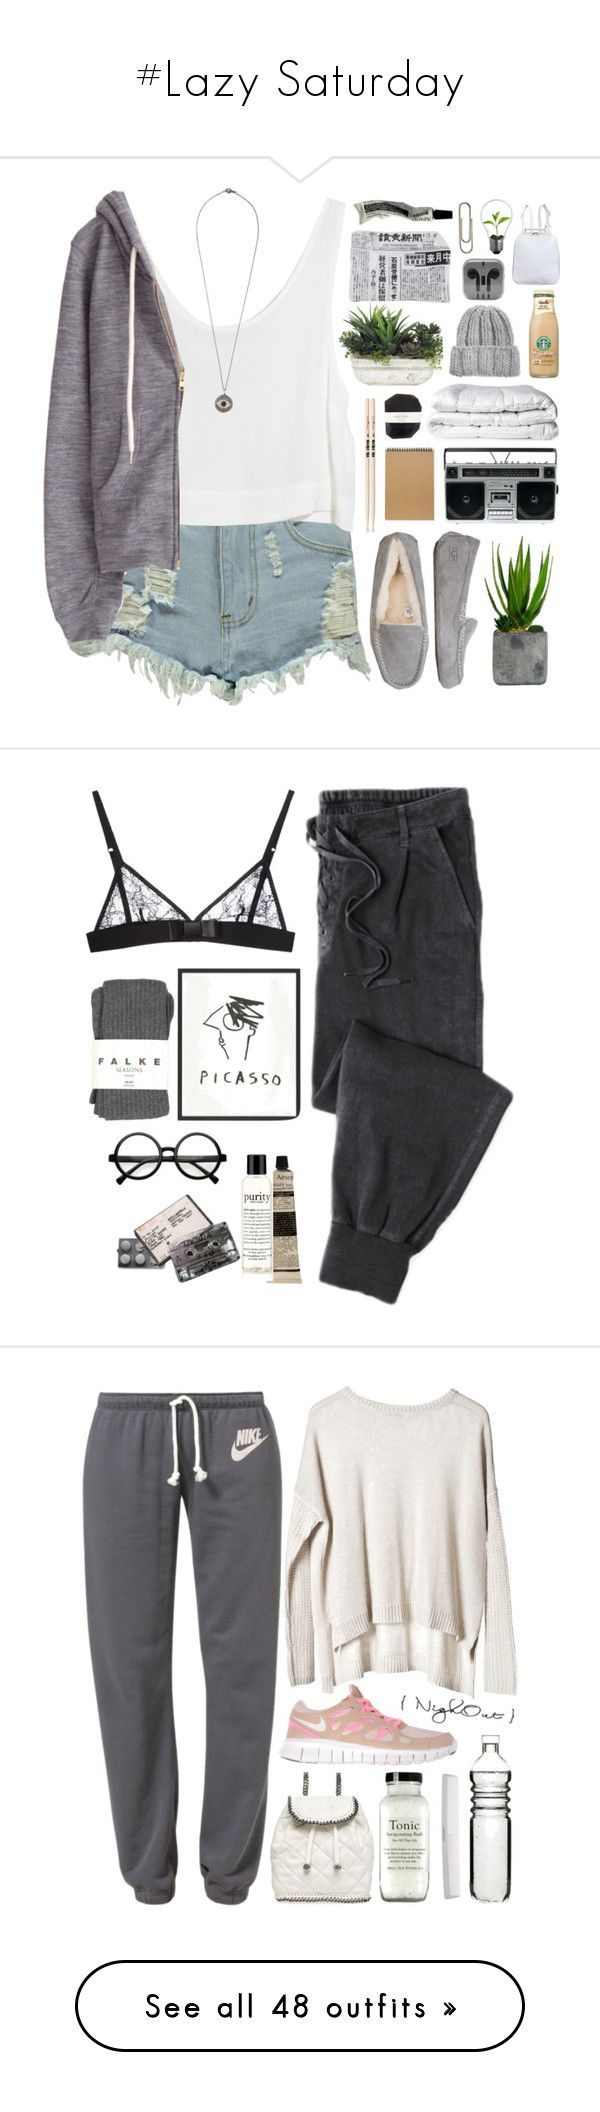 """""""#Lazy Saturday"""" by lolgenie ❤ liked on Polyvore featuring Lux-Art Silks, Boohoo, MINKPINK, UGG Australia, Laura Ashley, Muji, Firth, Brinkhaus, Pelle and KISS by Fiona Bennett"""